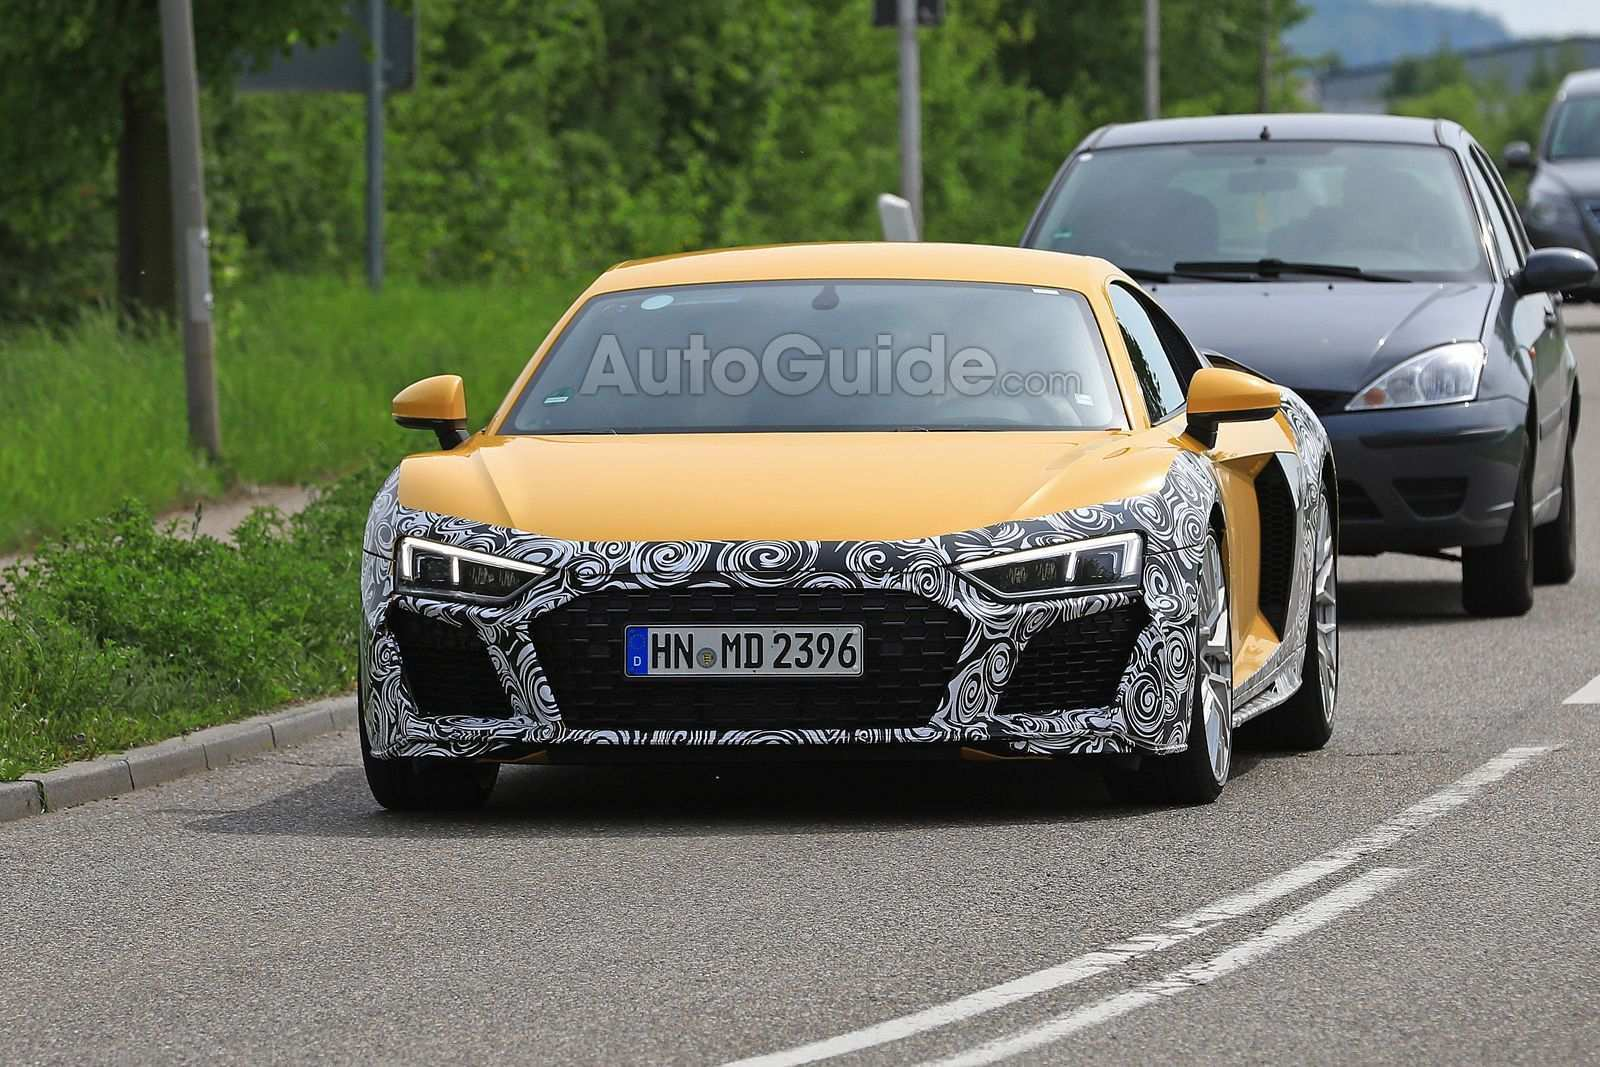 22 Gallery of 2020 Audi R8 LMXs Specs and Review for 2020 Audi R8 LMXs